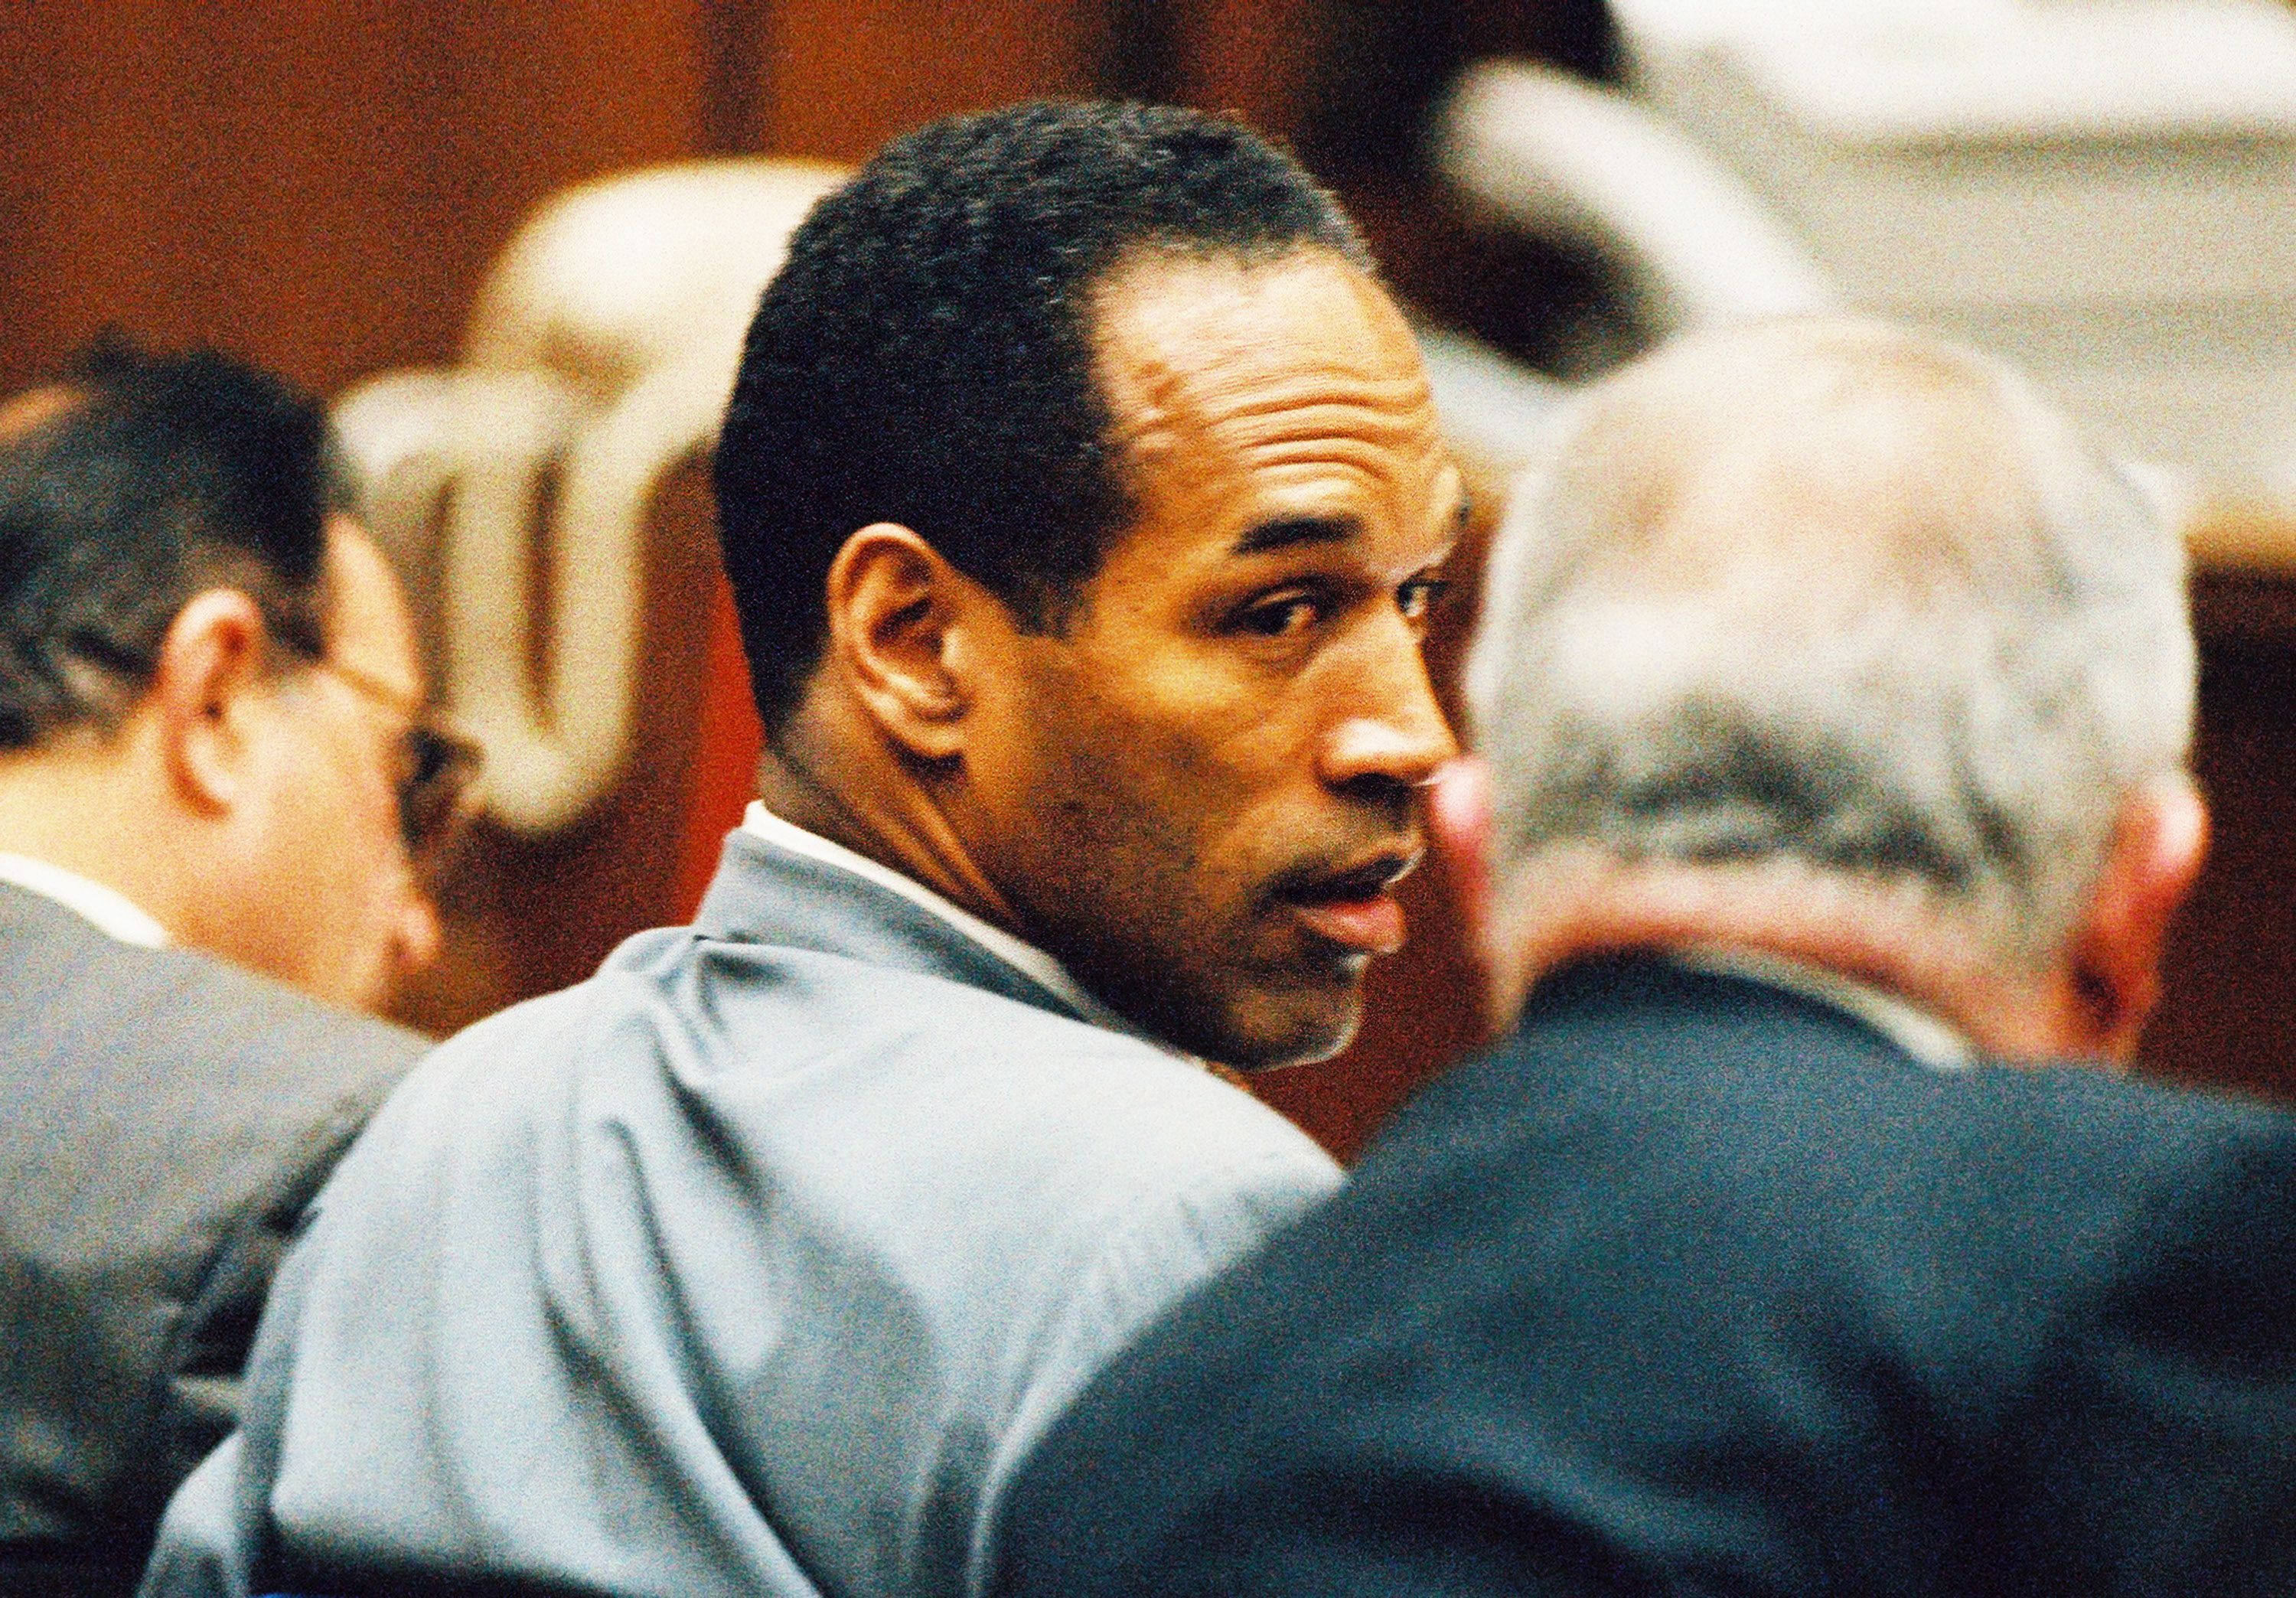 On Jan. 12, 1995, O.J. Simpson confers with his lawyer F. Lee Bailey during a pre-trial hearing.